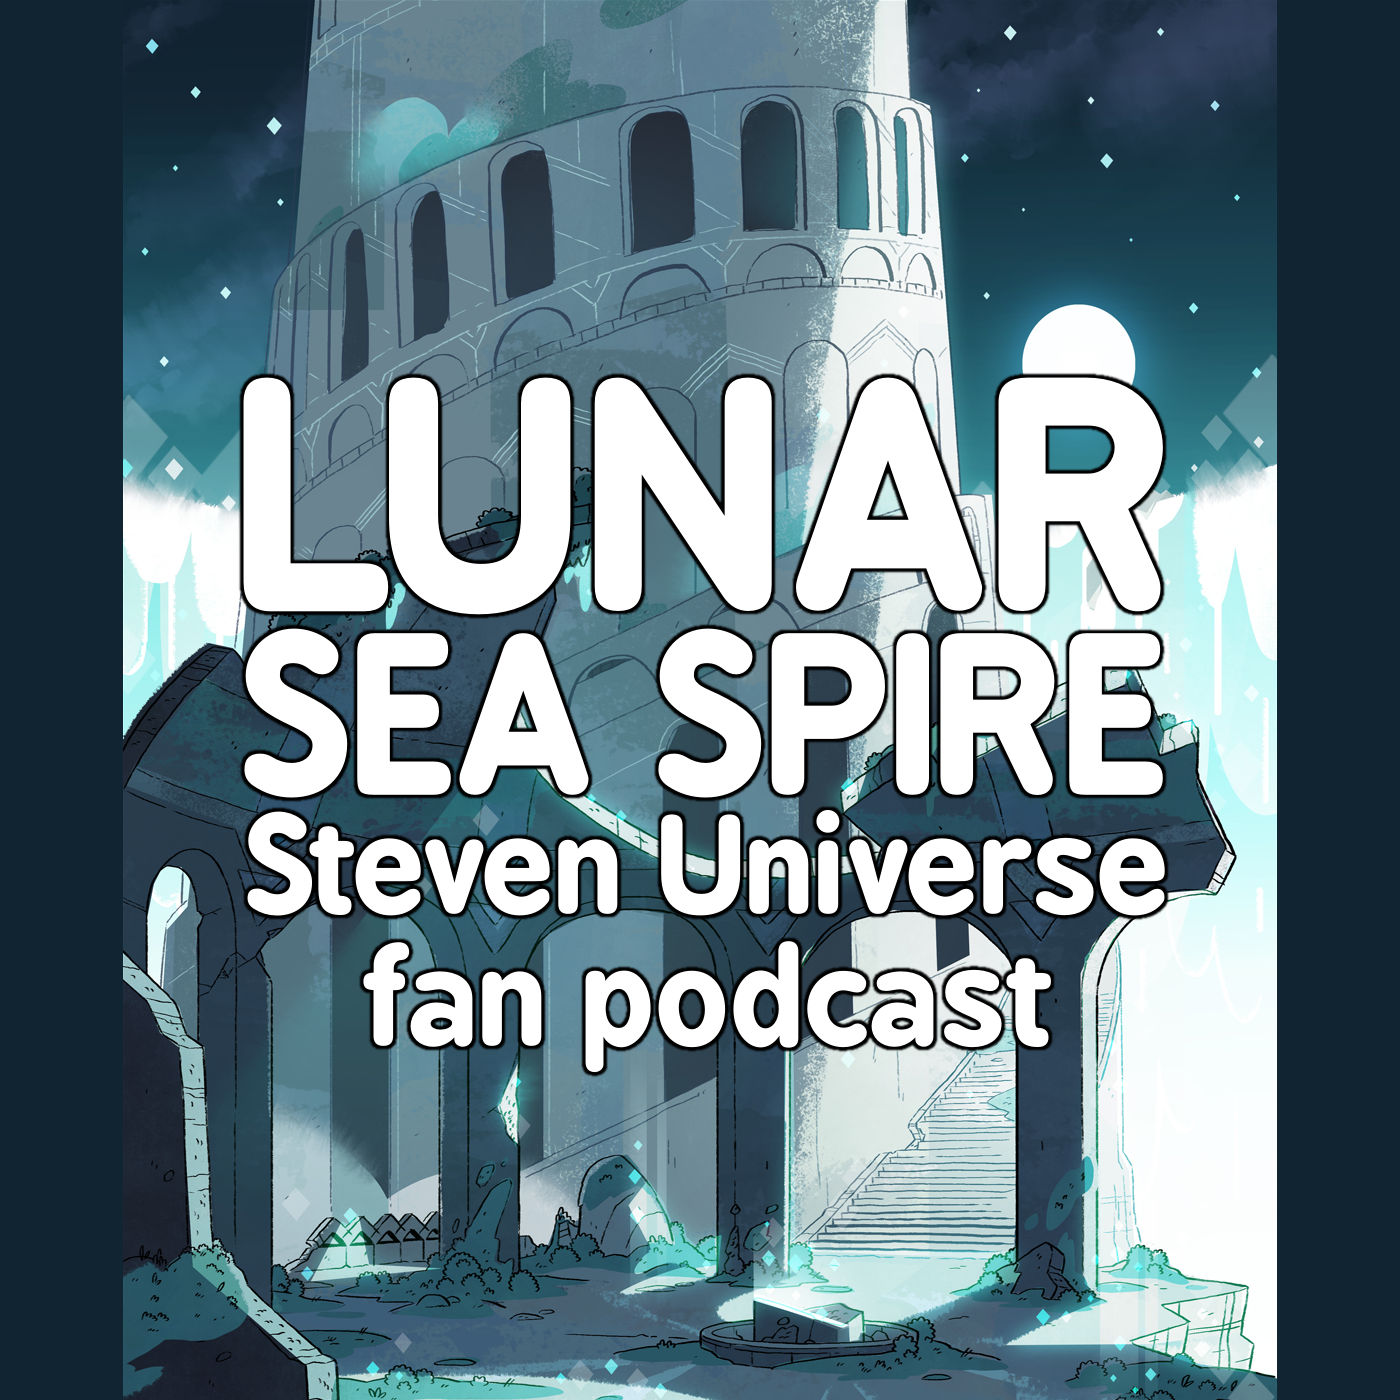 The Steven Universe fan podcast